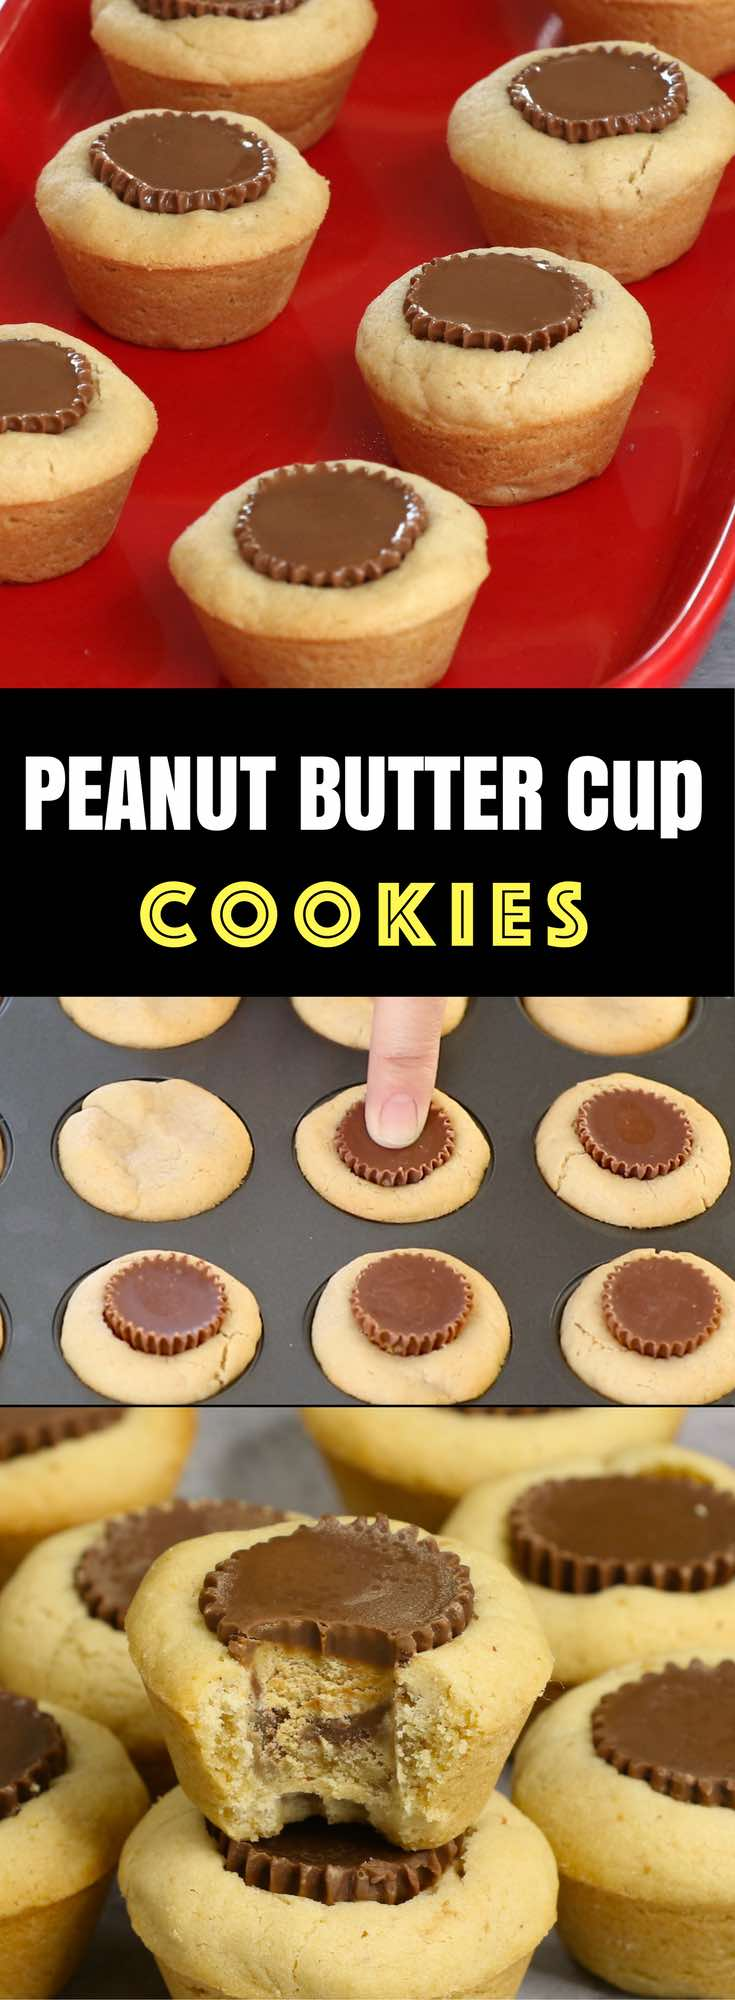 Peanut Butter Cup Cookies –Unbelievably delicious desserts or snacks recipe that's fool proof. Miniature Reese's peanut butter cups stuffed inside soft and chewy cookie cups, creating a wonderful cookie cups that melt in your mouth. All you need is only a few simple ingredients. Fun recipe to make with kids. Quick and Easy recipe that takes only 25 minutes. Dessert, Party Food. Vegetarian. Video recipe.